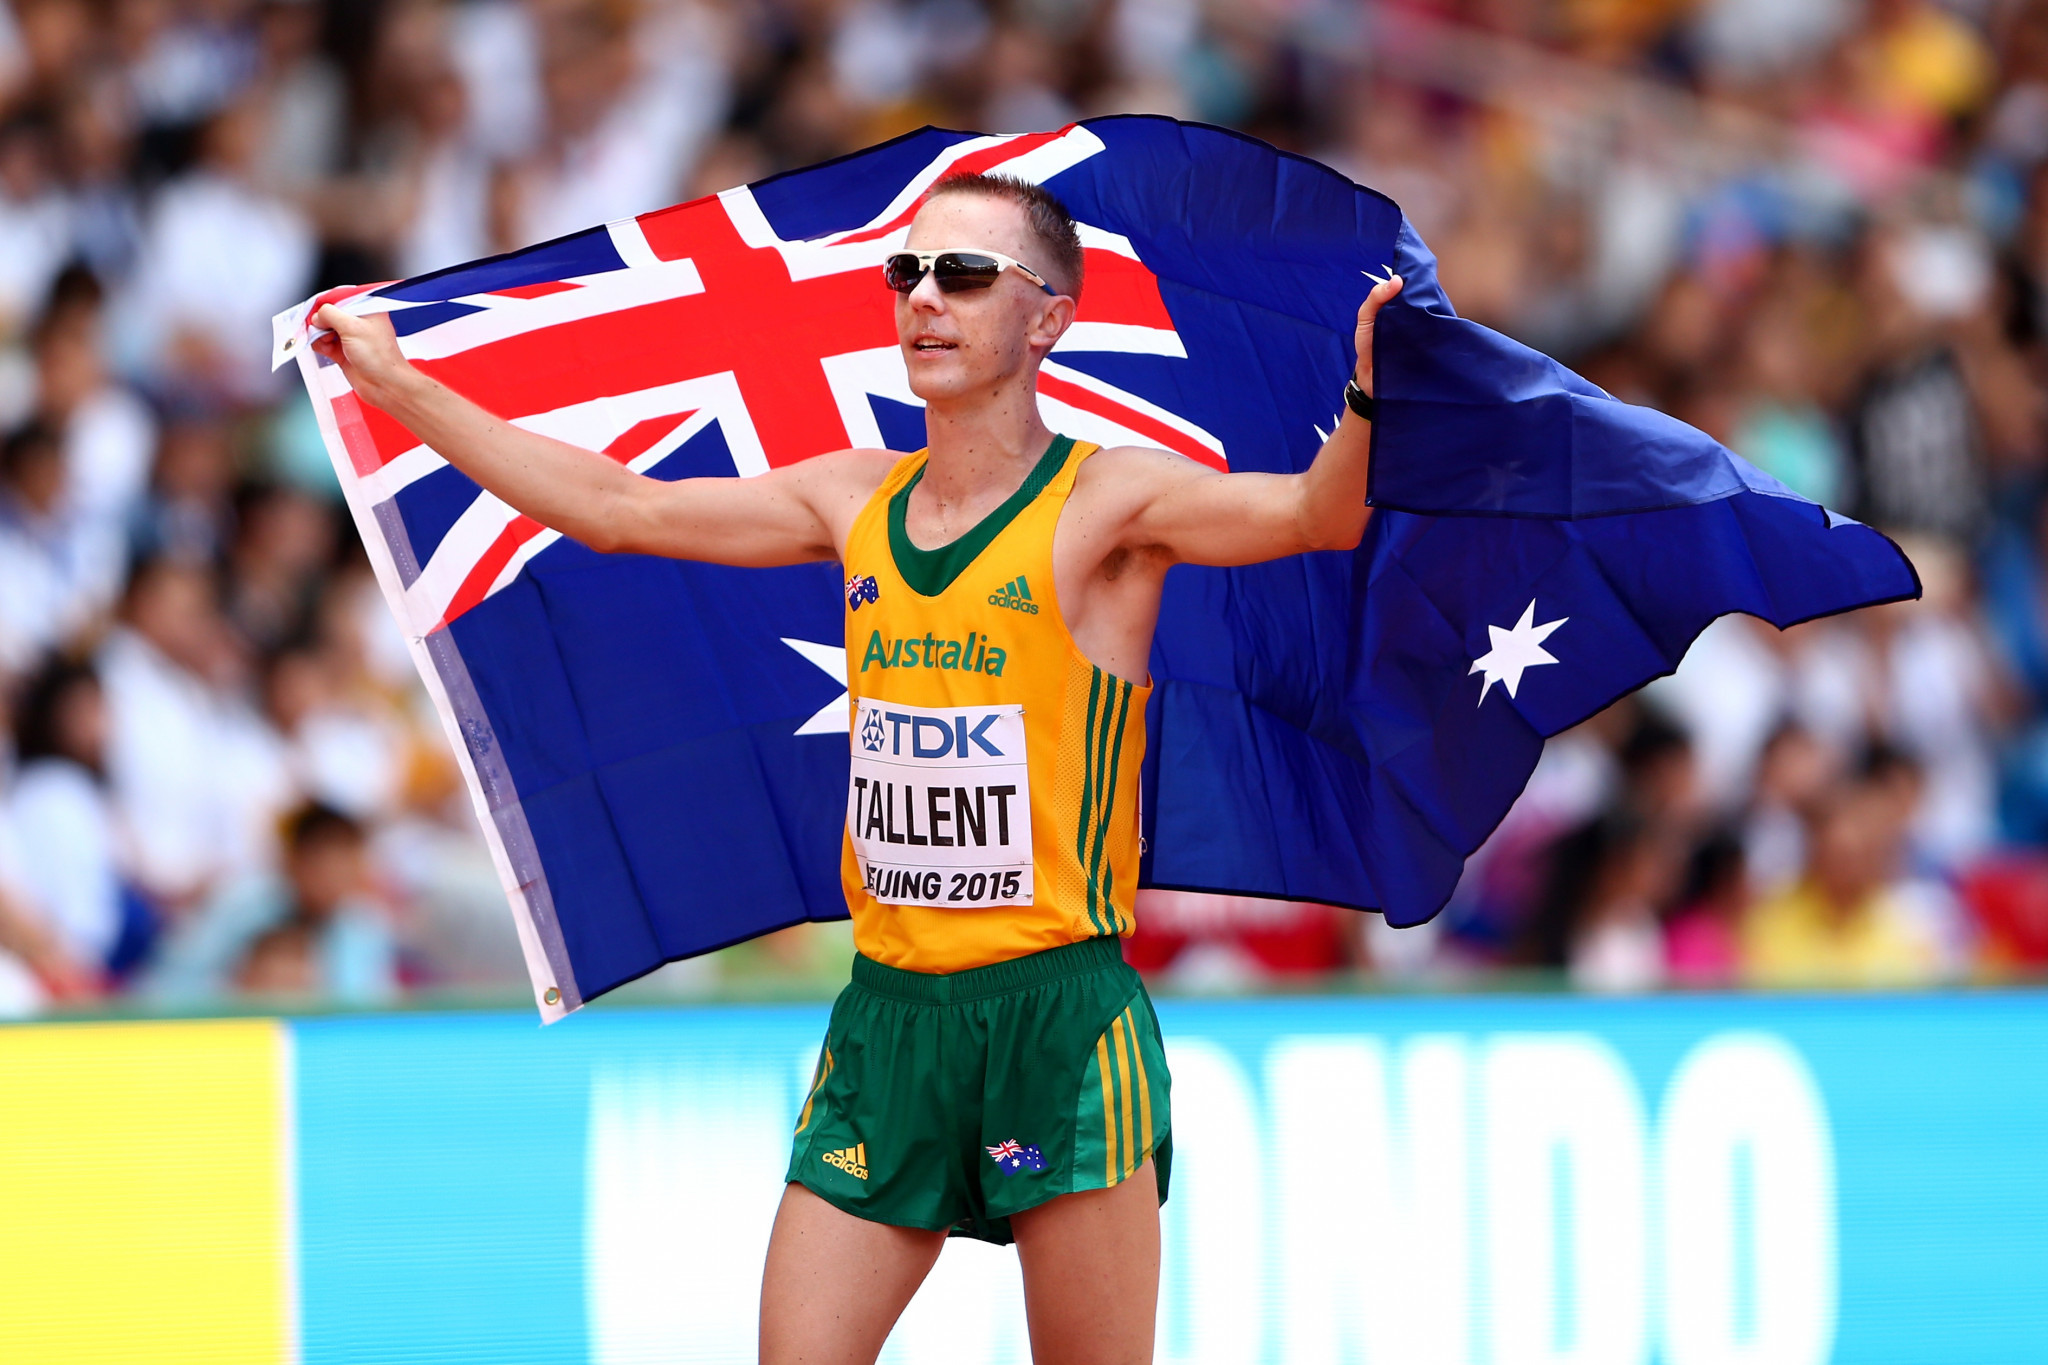 Australia's four-time Olympic race walking medallist Jared Tallent has announced his retirement after injury forced him to give up his Tokyo 2020 challenge ©Getty Images